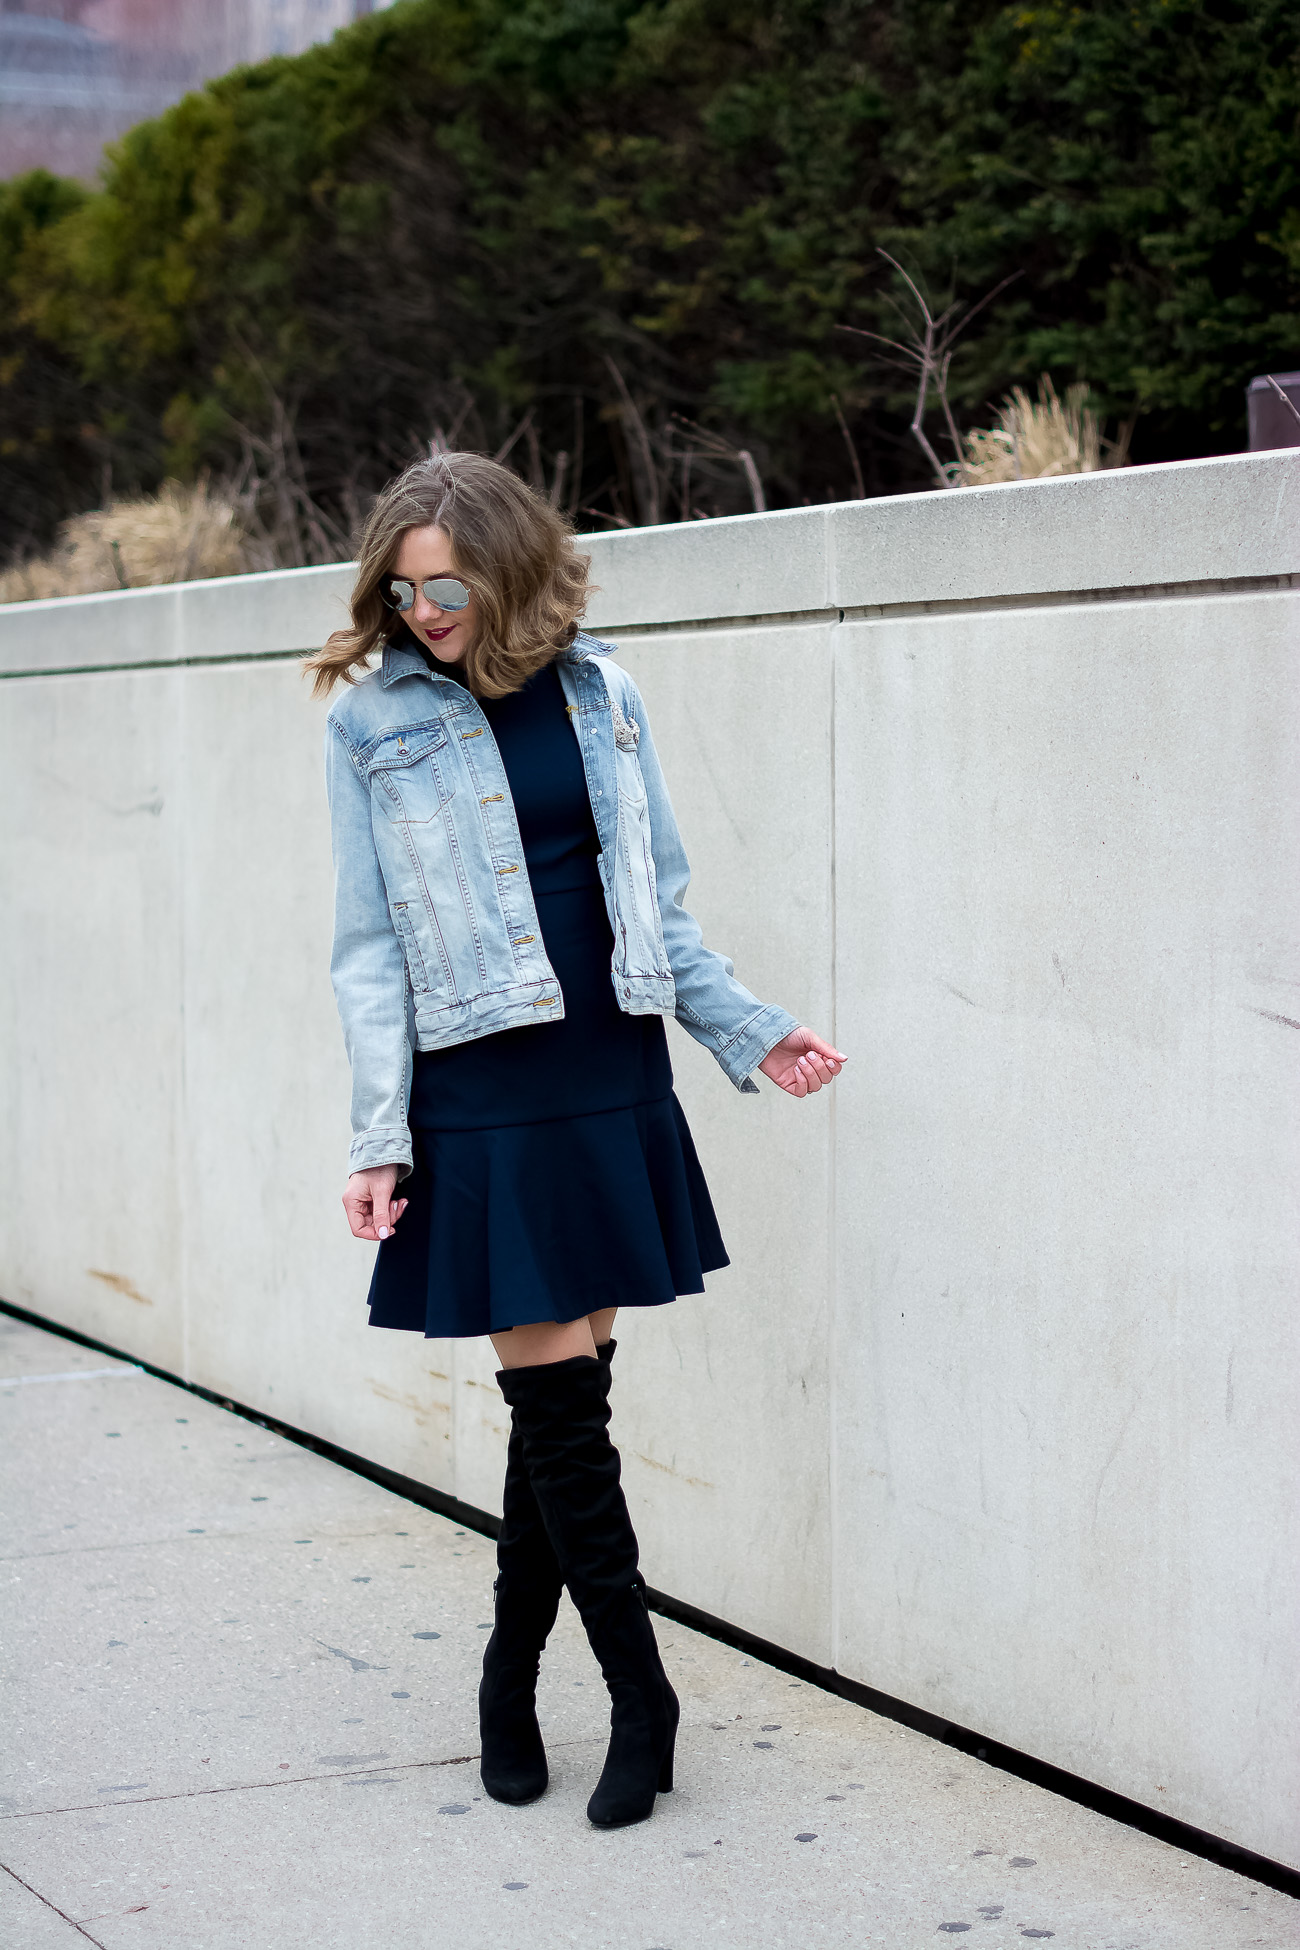 target-light-wash-denim-jacket-banana-republic-fit-and-flare-dress-steve-madden-over-the-knee-faux-suede-black-boots-vintage-rhinestone-brooches-mirrored-aviators-vintage-meets-modern-outfit-6